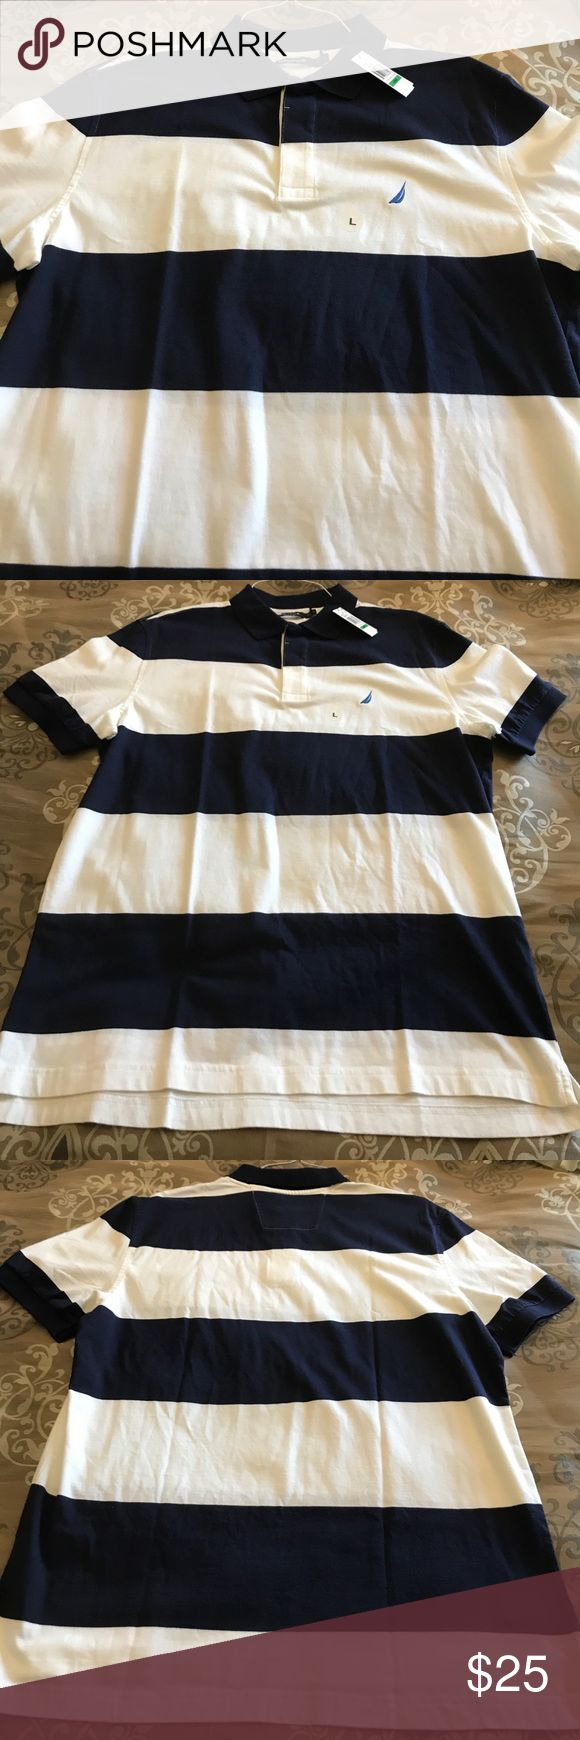 NWT 💗 Men's Nautica polo shirt This shirt sleeve men's polo shirt is brand new!  It has navy/white stripes and is a size large. Thanks for checking out my closet! Nautica Shirts Polos